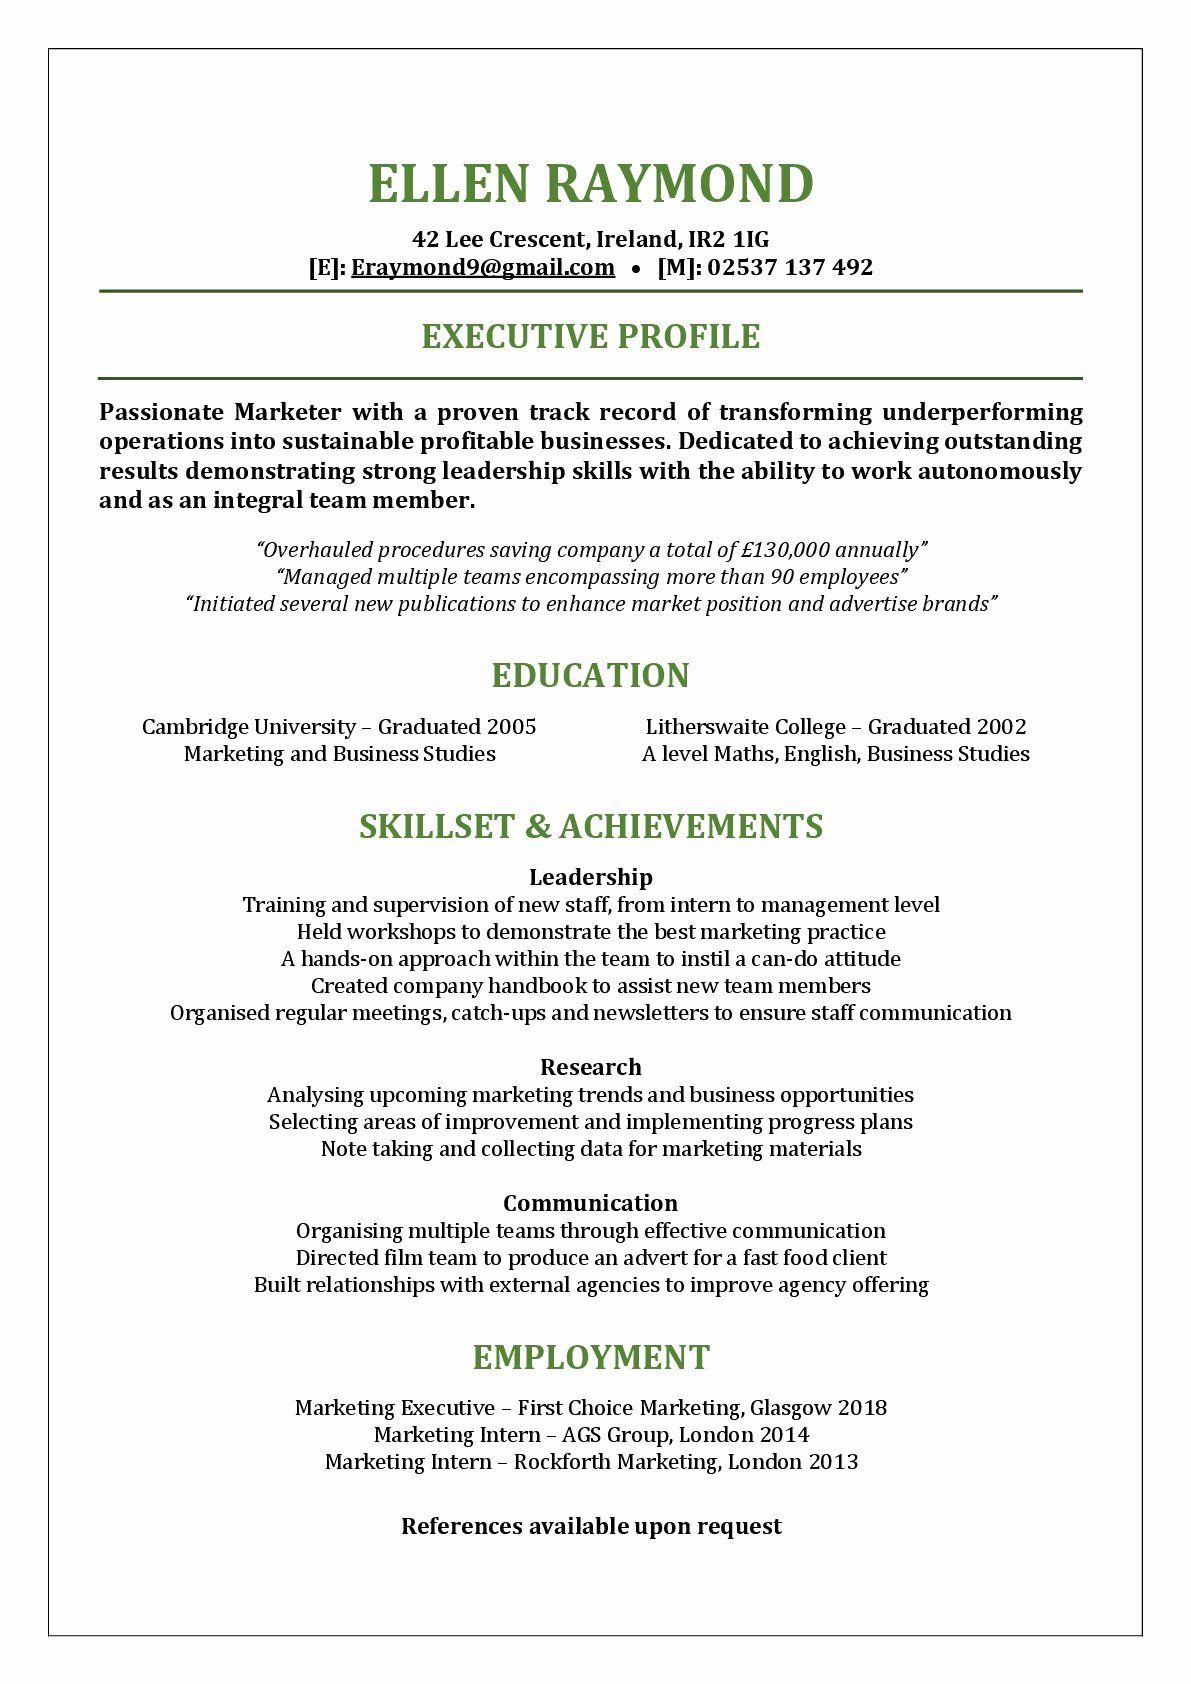 best functional resume format 2020